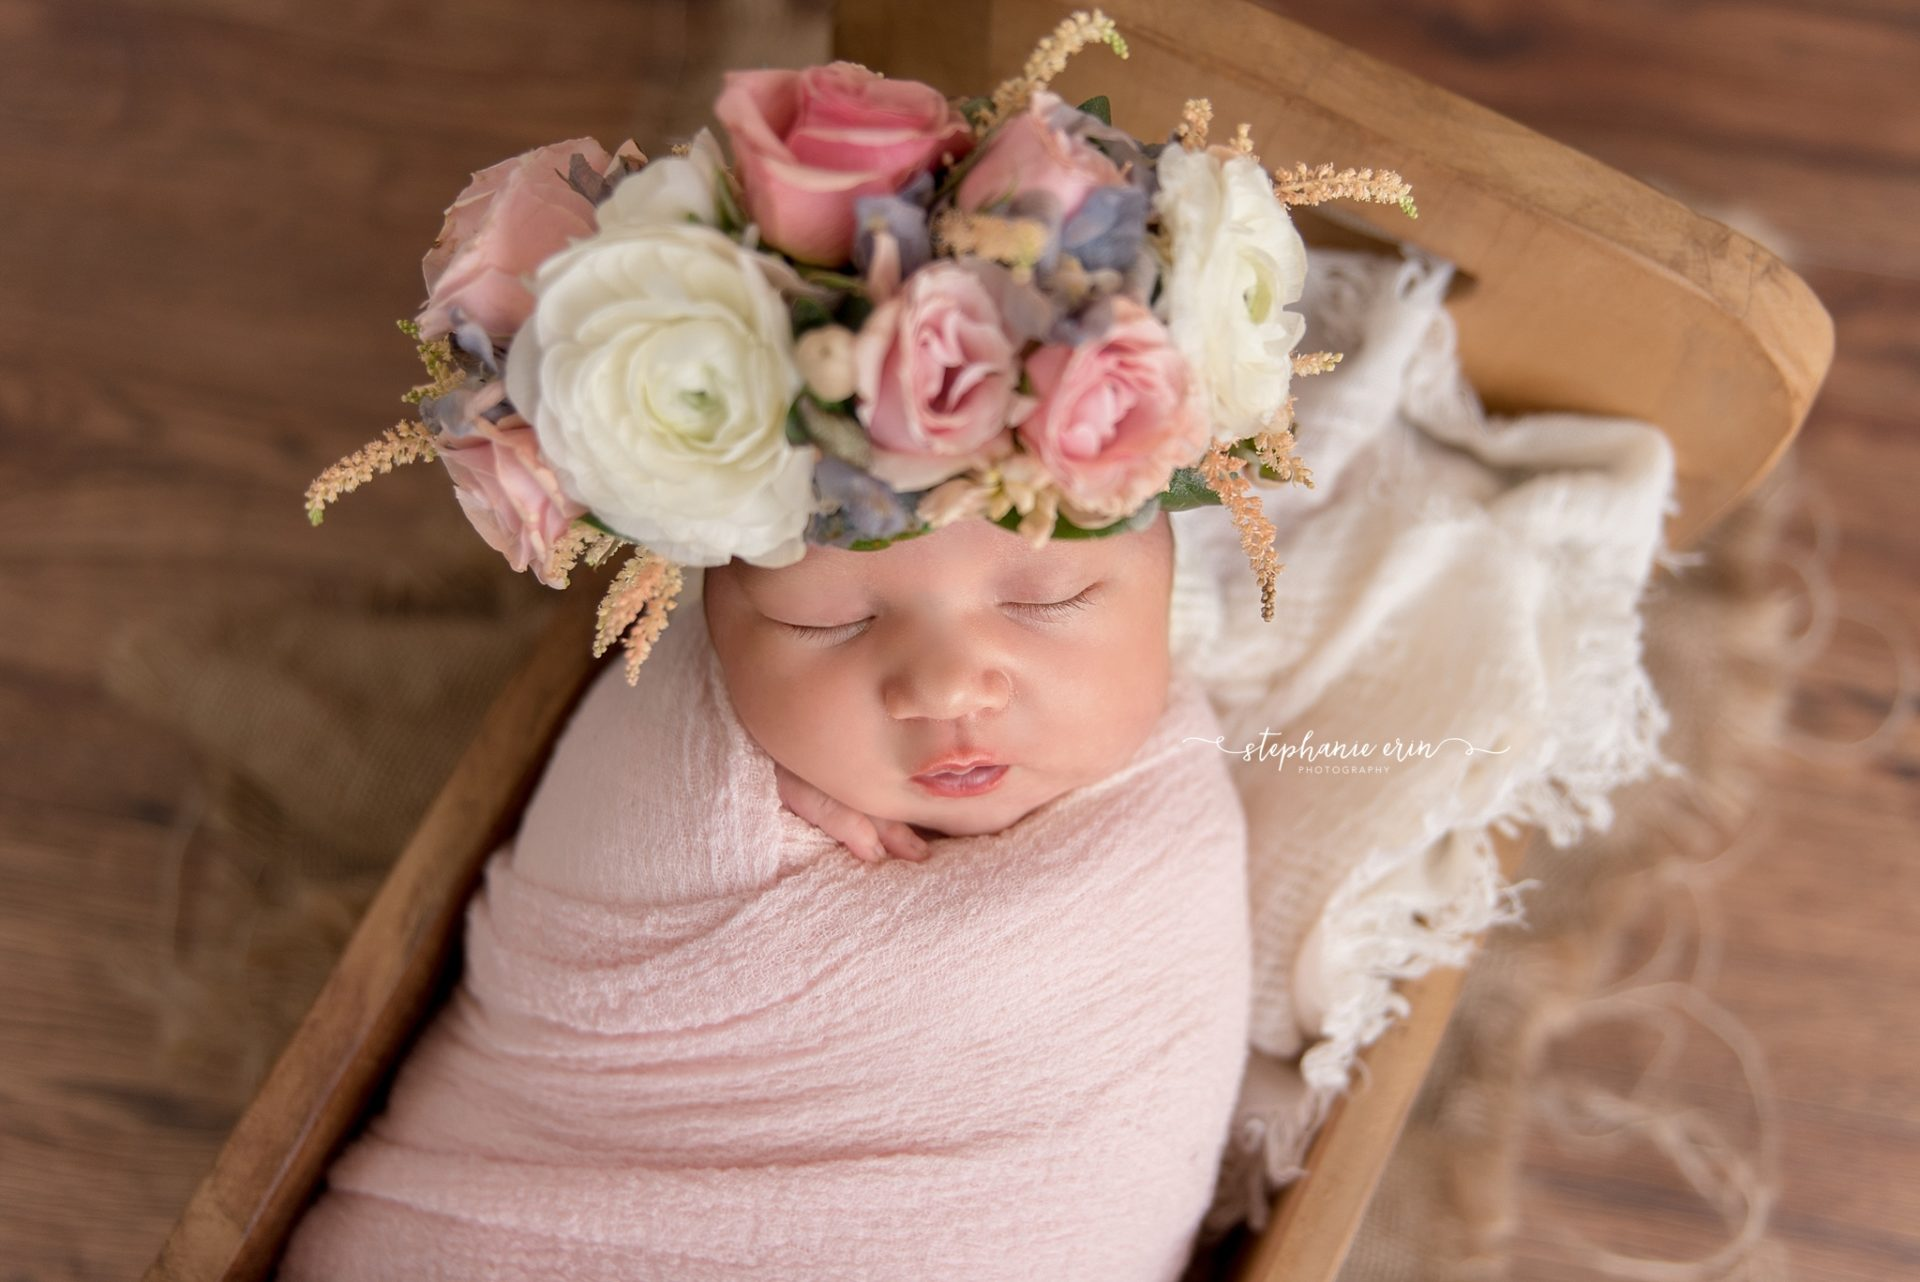 Luna Newborns | Stephanie Erin Photography | Southern Utah Newborn Photographer